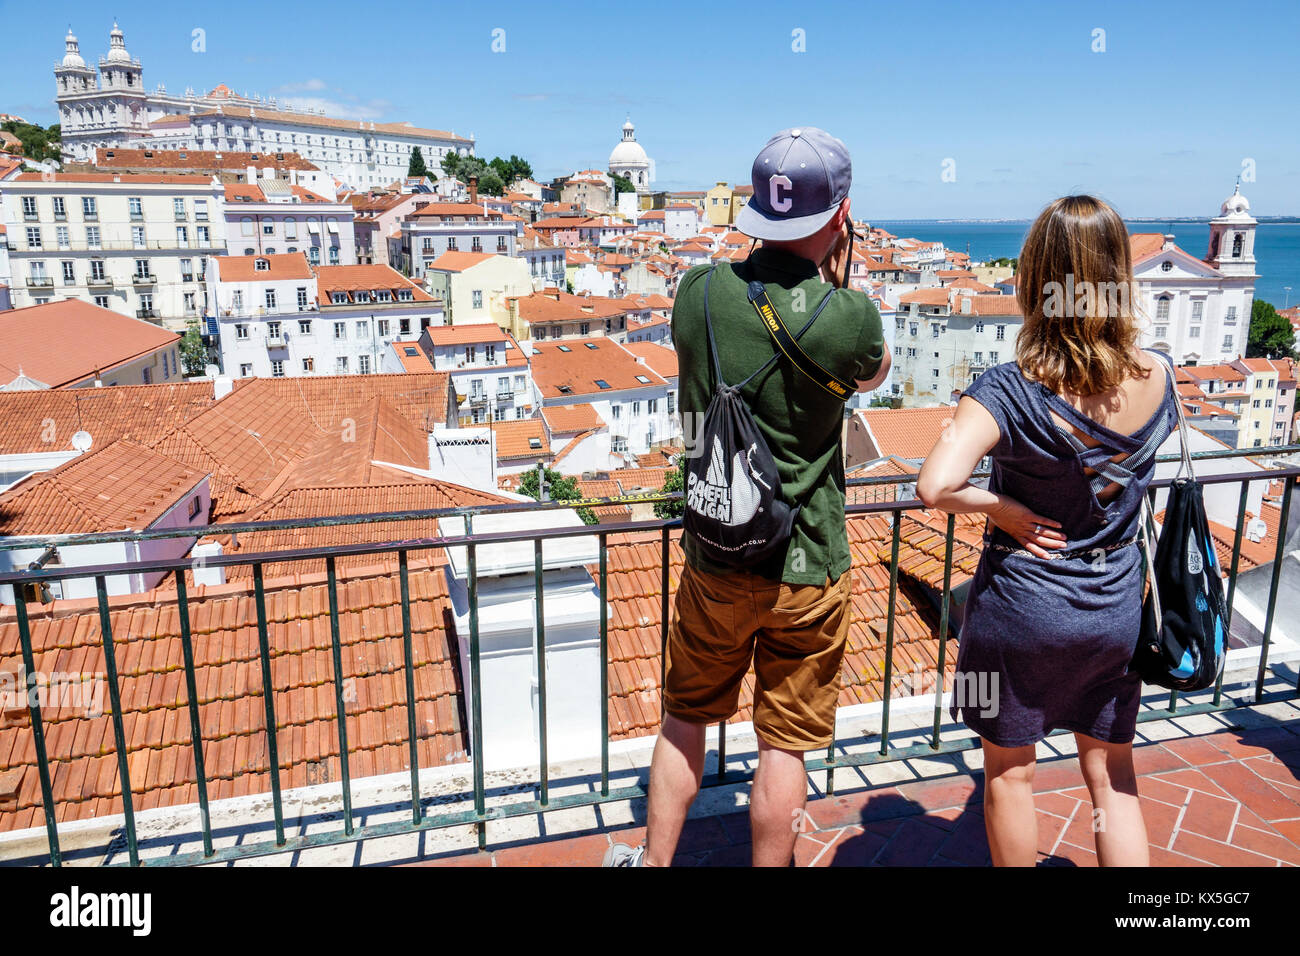 Lisbon Portugal Tagus River Alfama historic neighborhood Miradouro das Portas do Sol observation deck terrace viewpoint - Stock Image